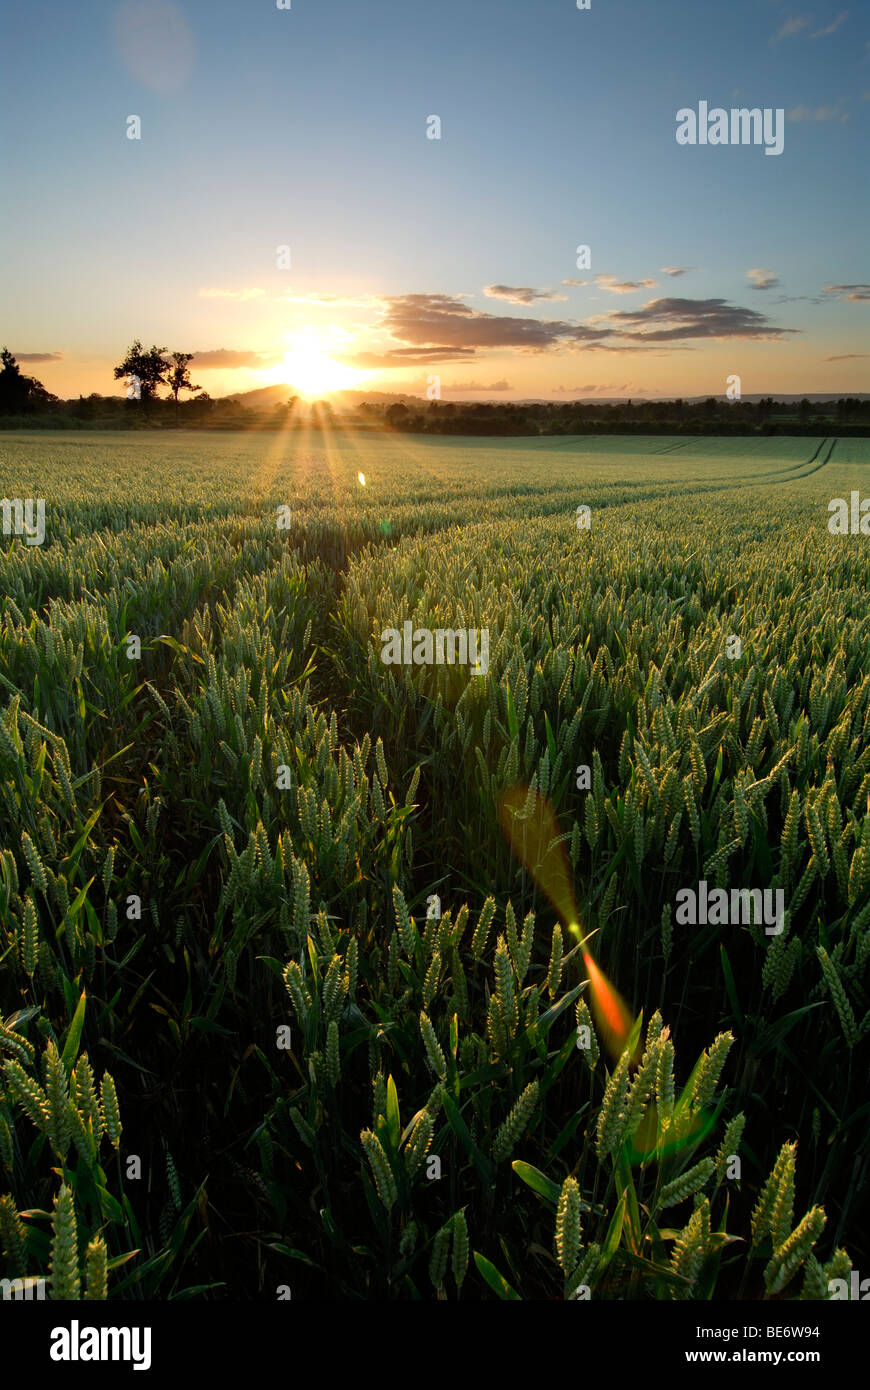 The sun gleams over a field of corn with tractor lines running through it - Stock Image